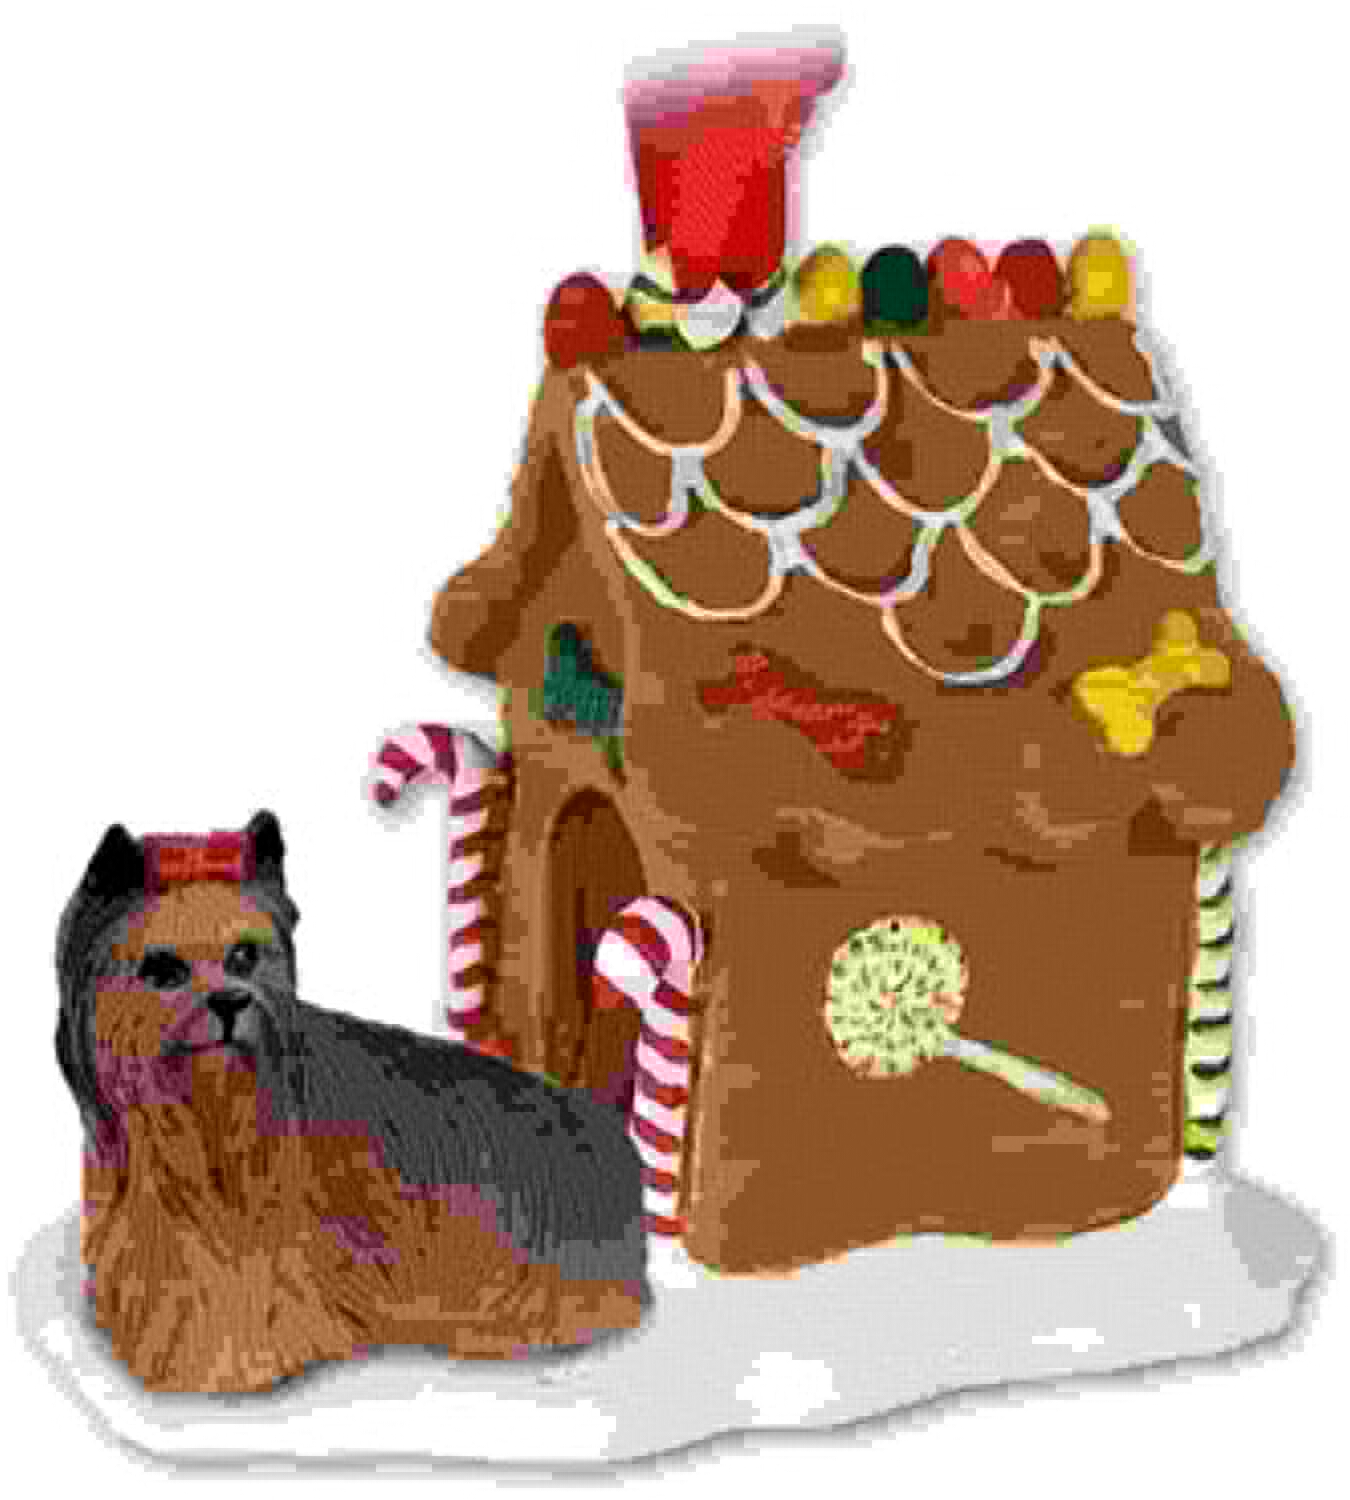 solo para ti Yorkie Yorkie Yorkie Yorkshire Terrier Gingerbread House Christmas Ornament by Conversation Concepts  ofreciendo 100%